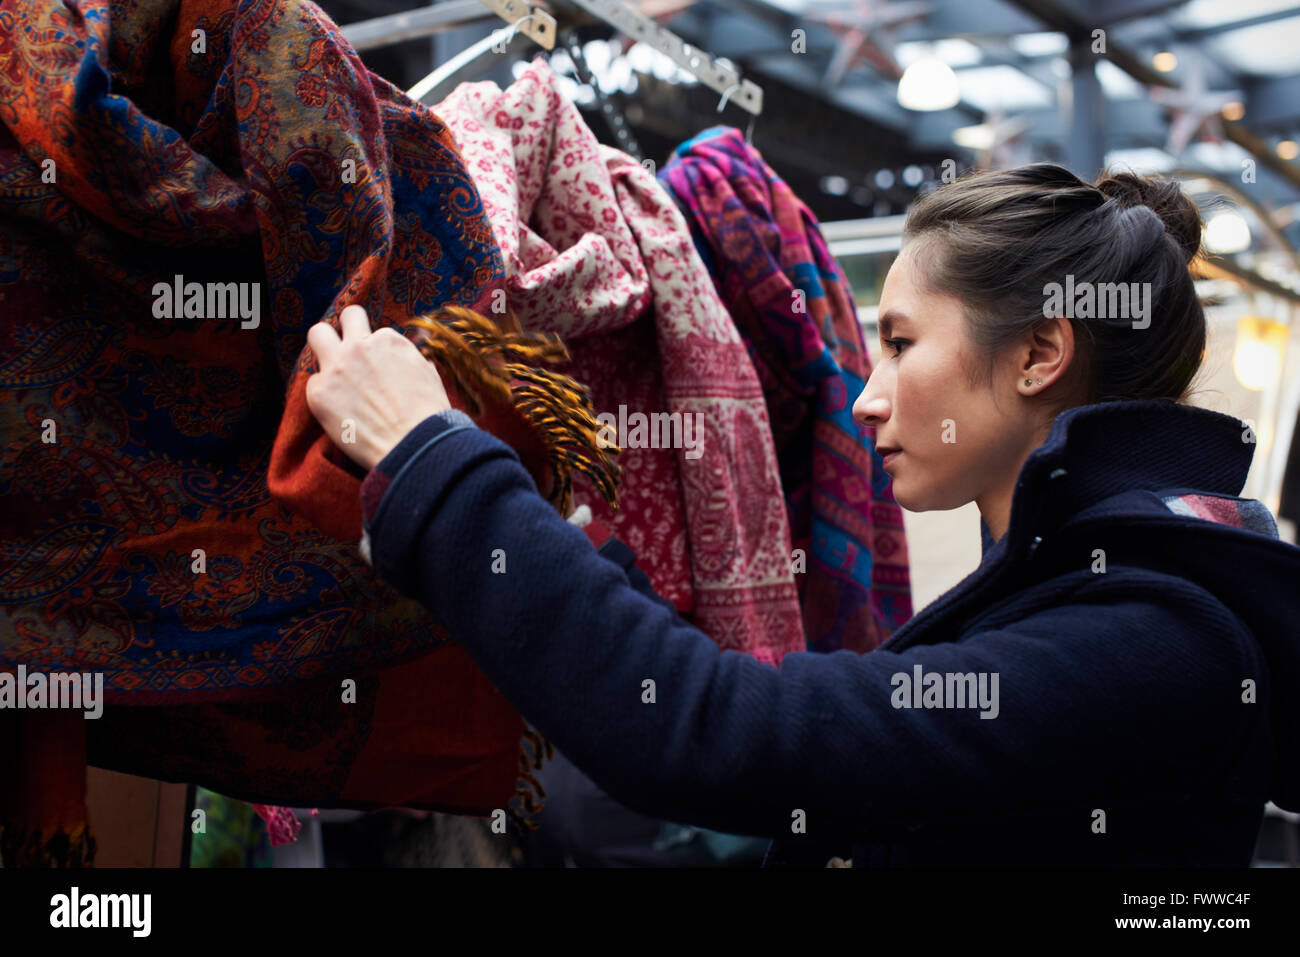 Young Woman Shopping in Marché Couvert Photo Stock